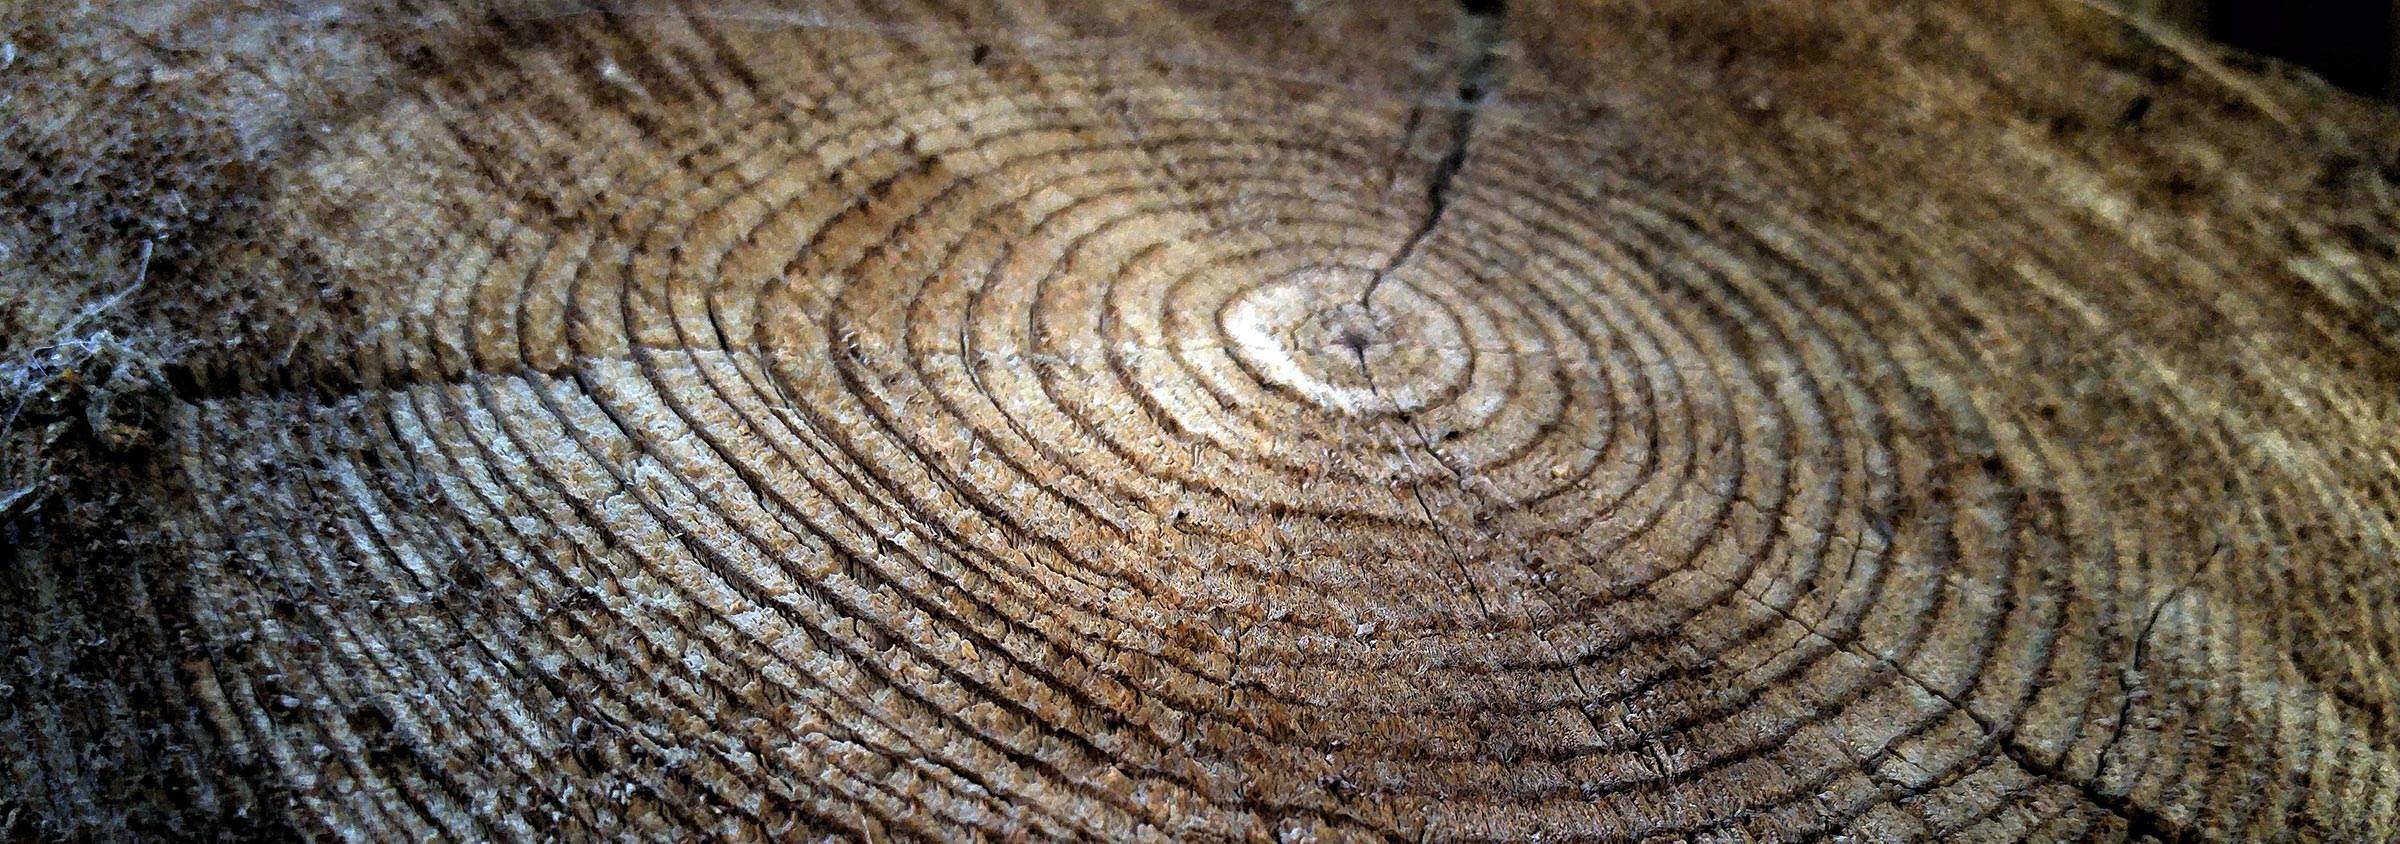 tight shot of a tree trunk with the bands